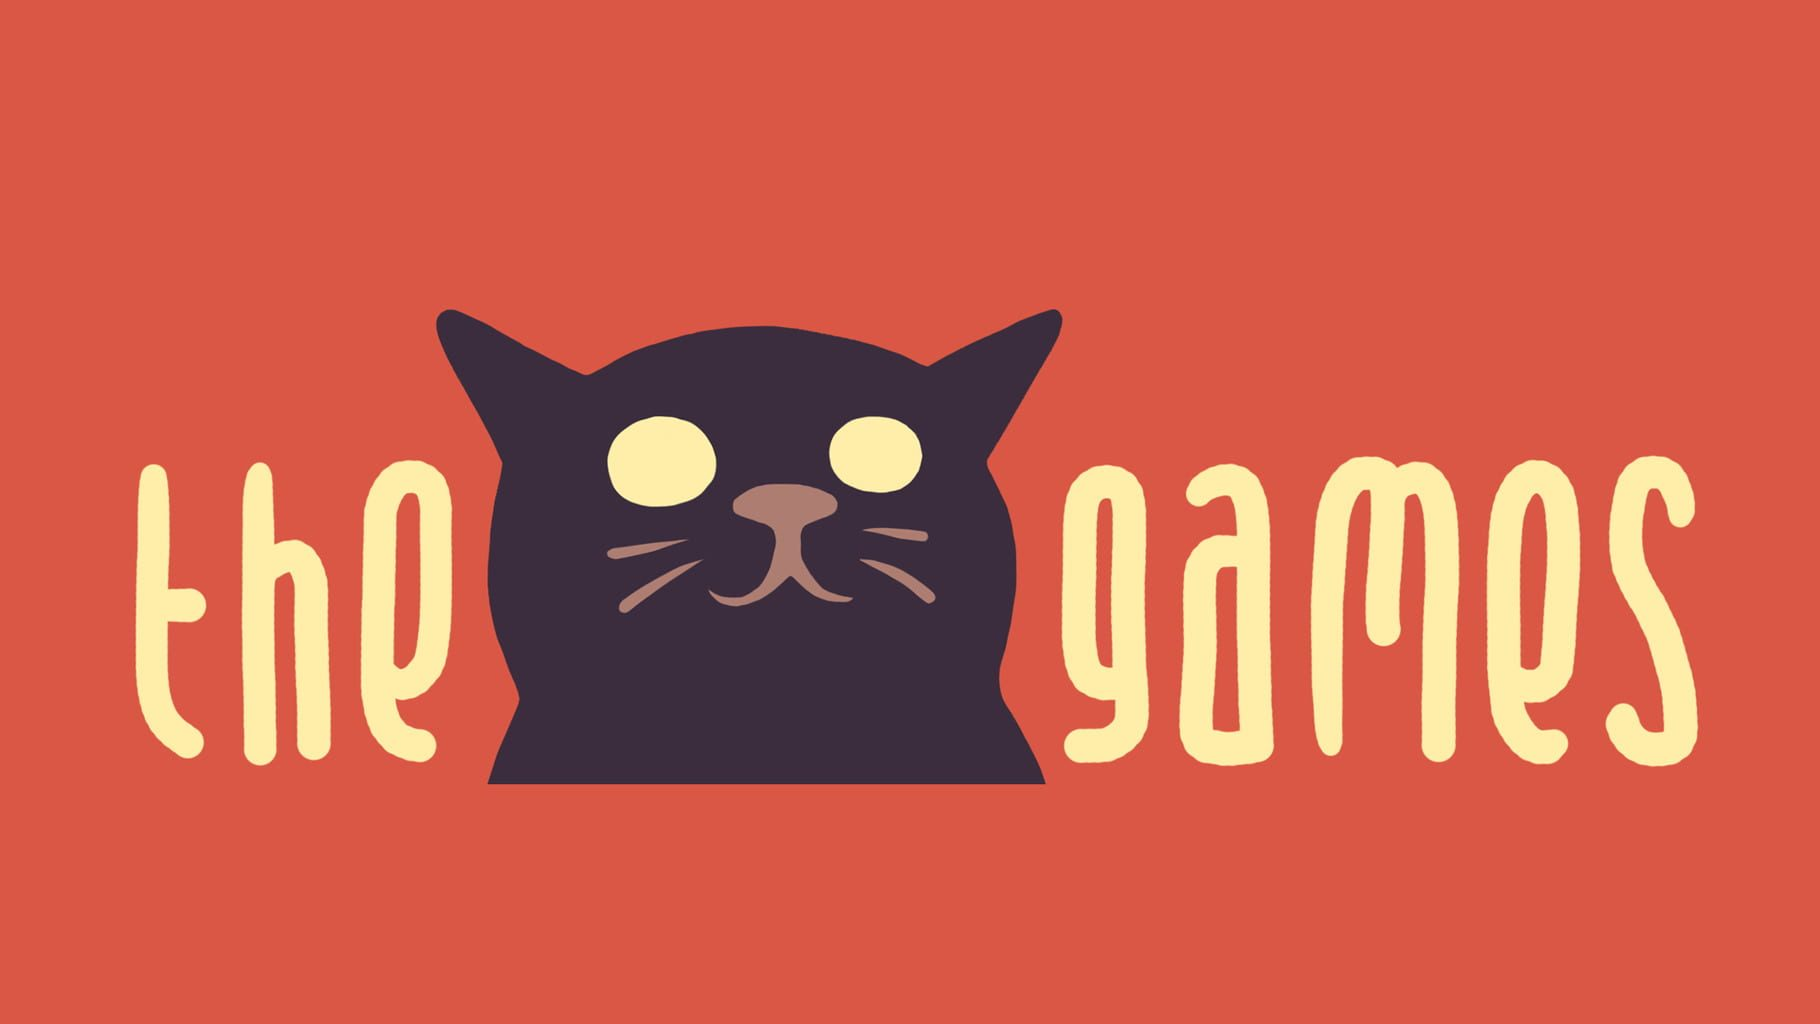 buy The Cat Games cd key for all platform